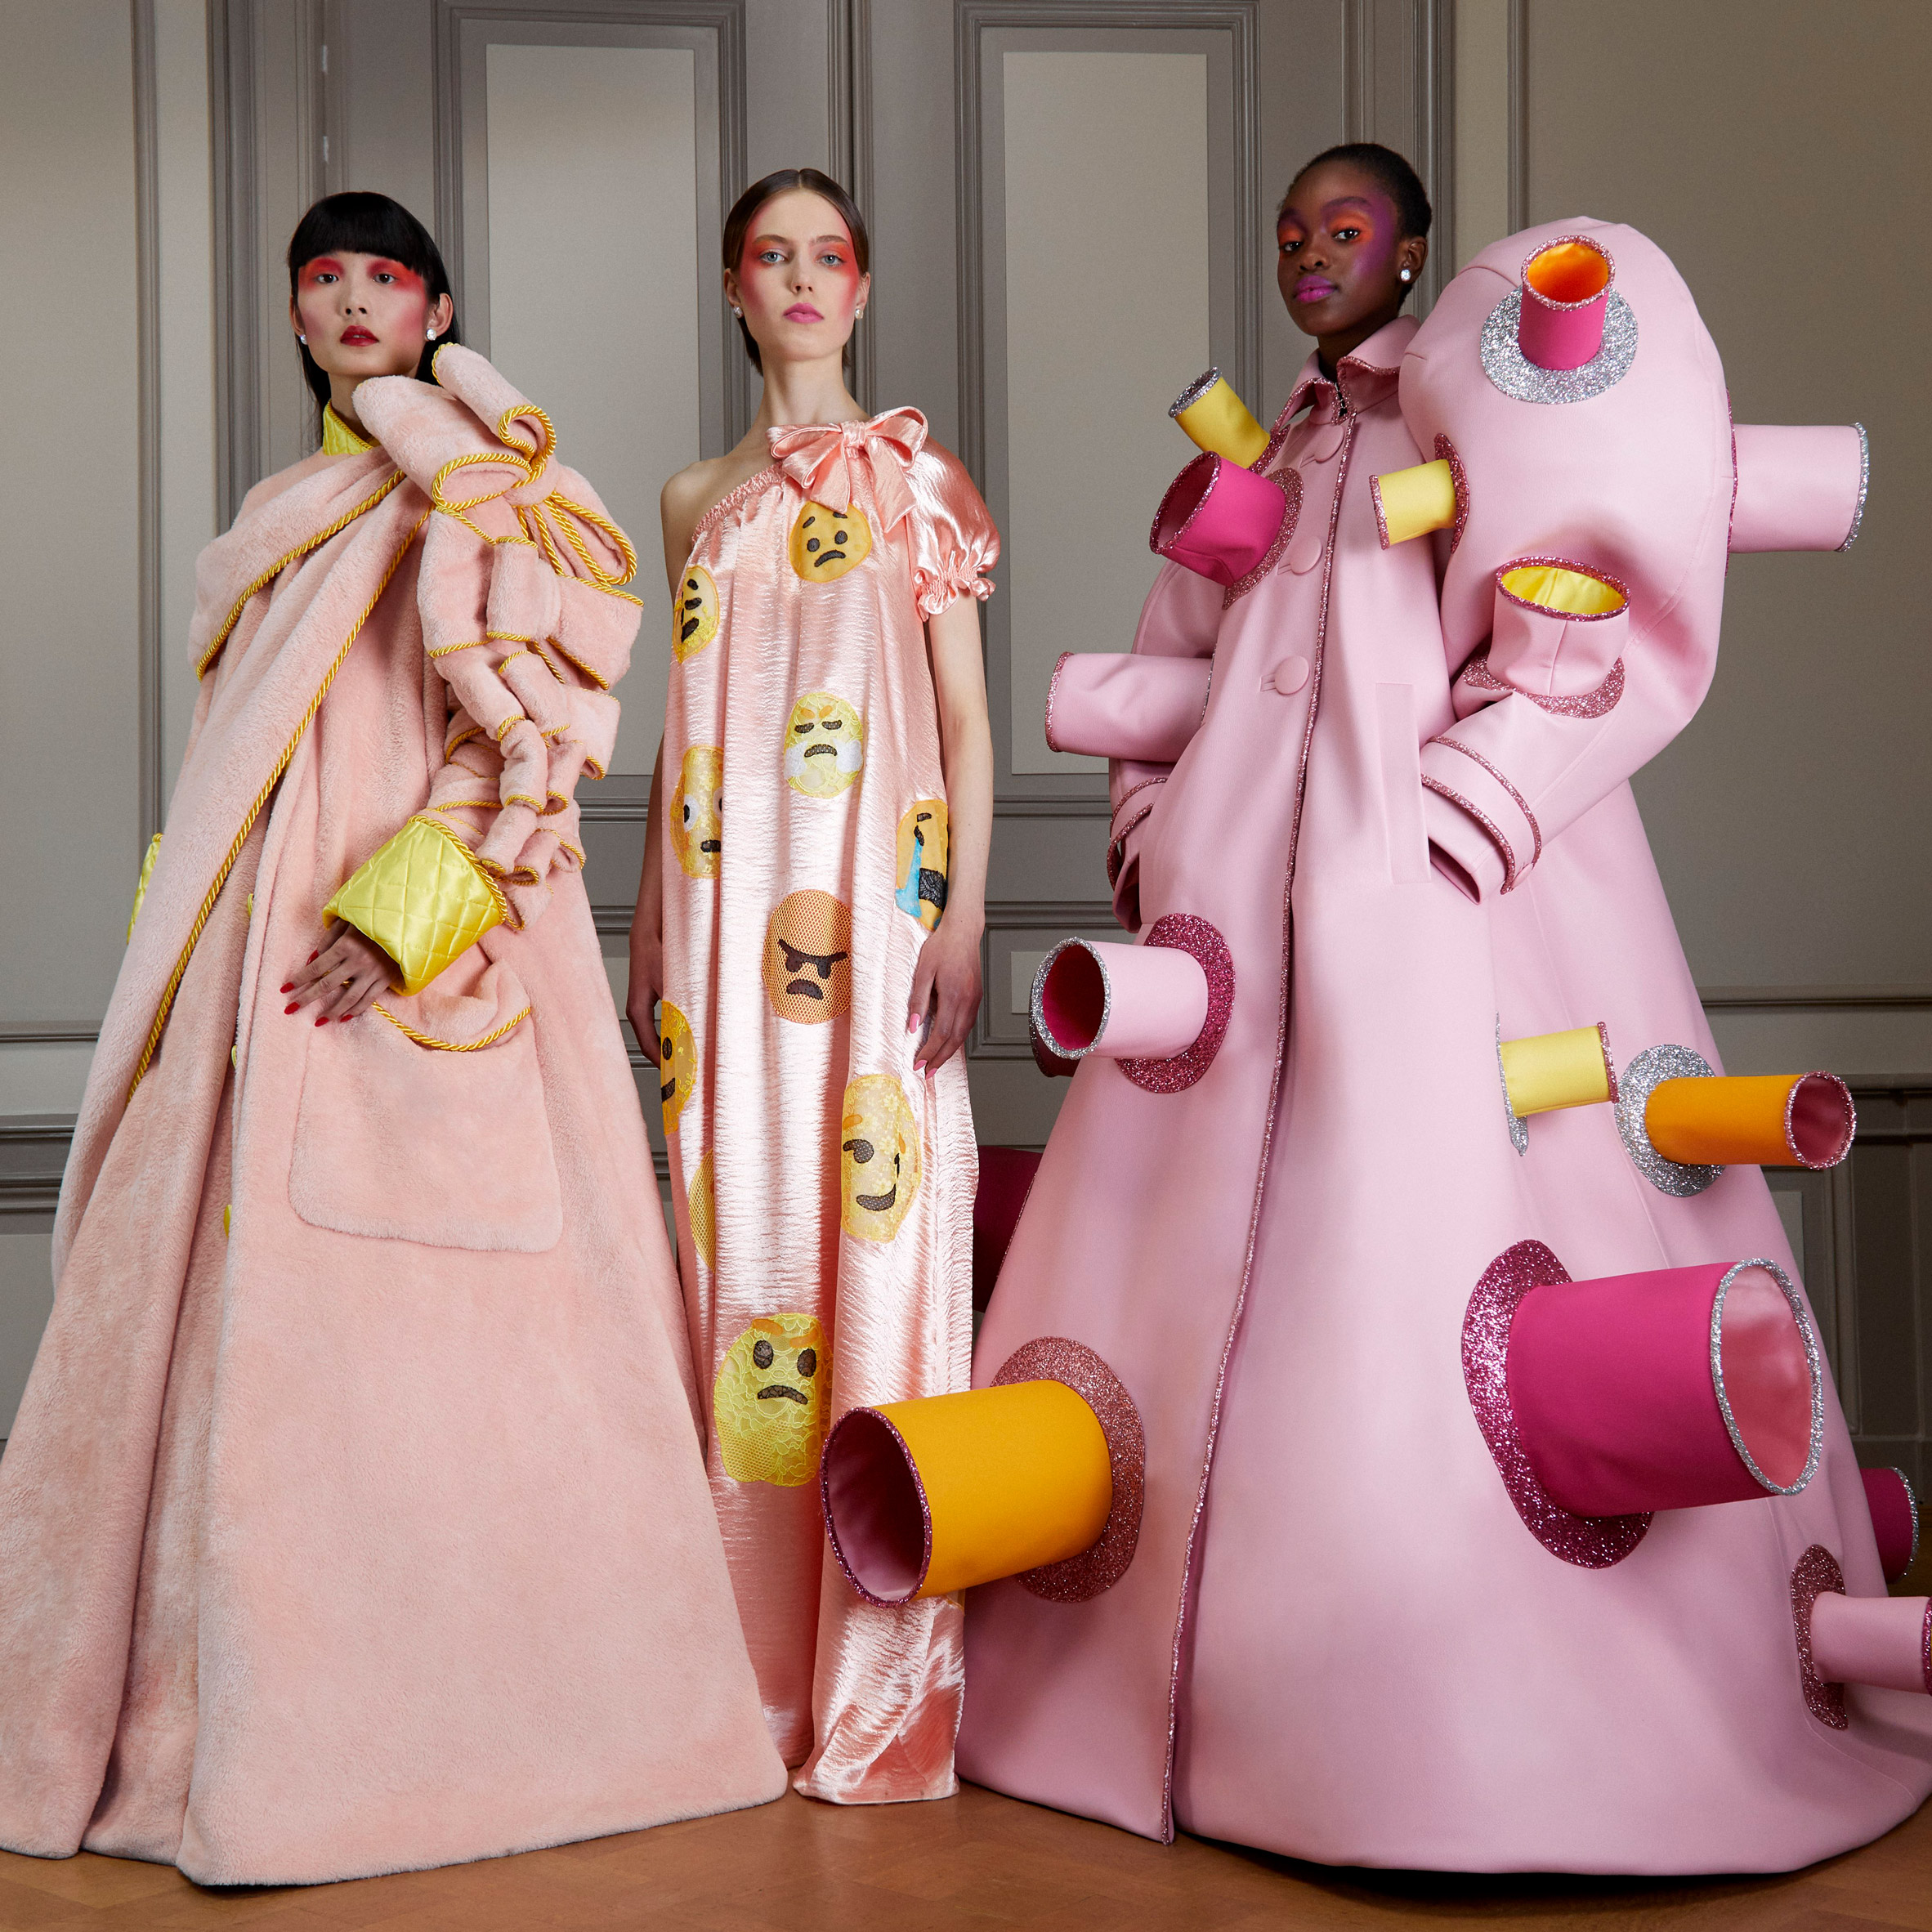 Viktor Rolf Channels Covid 19 Related Mentalities For Latest Fashion Line